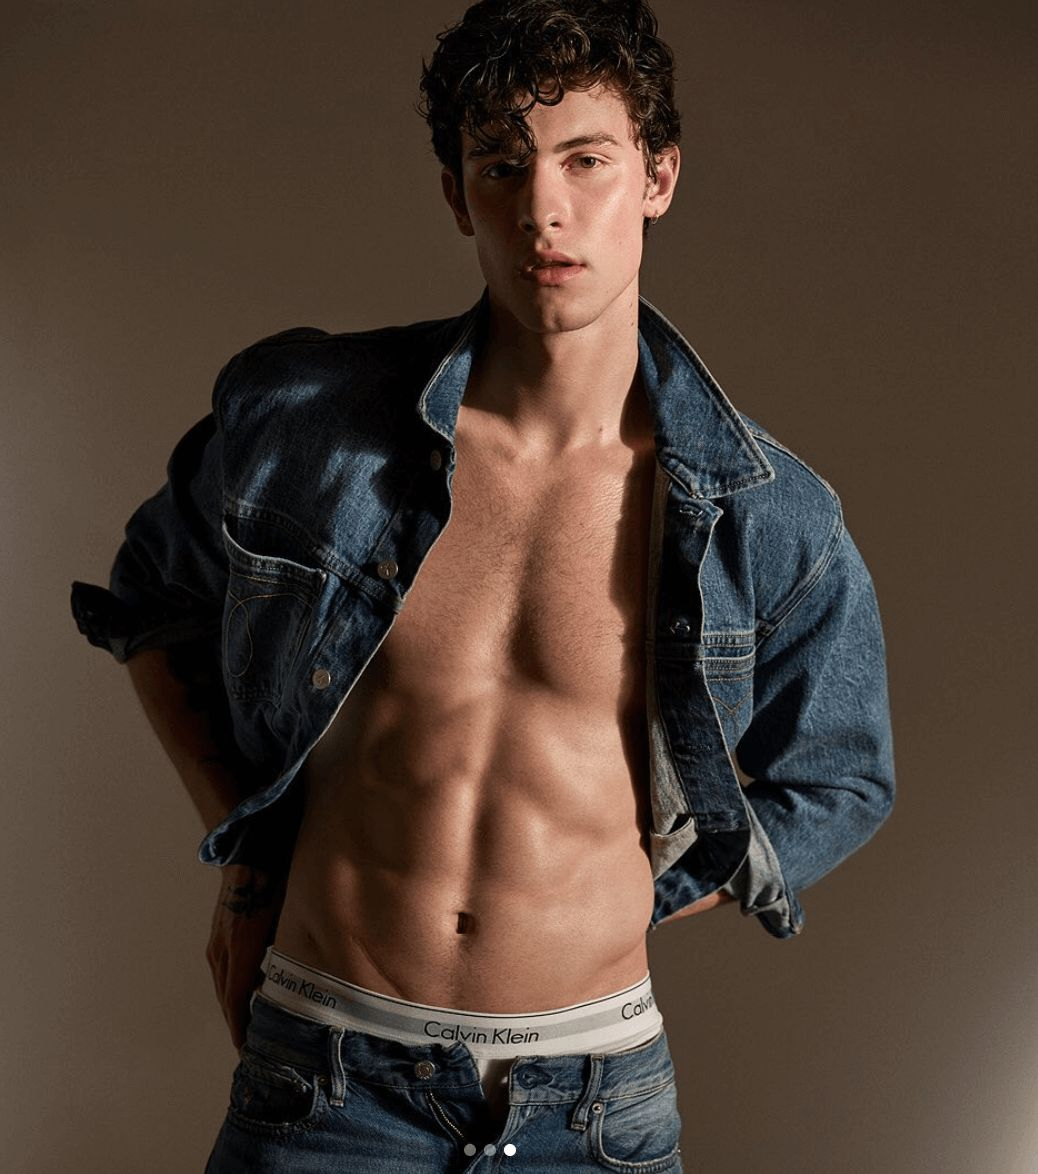 Image may contain: Shawn Mendes Calvin Klein, Shawn Mendes, Calvin Klein, underwear, nudes, photos, Pants, Apparel, Clothing, Man, Human, Person